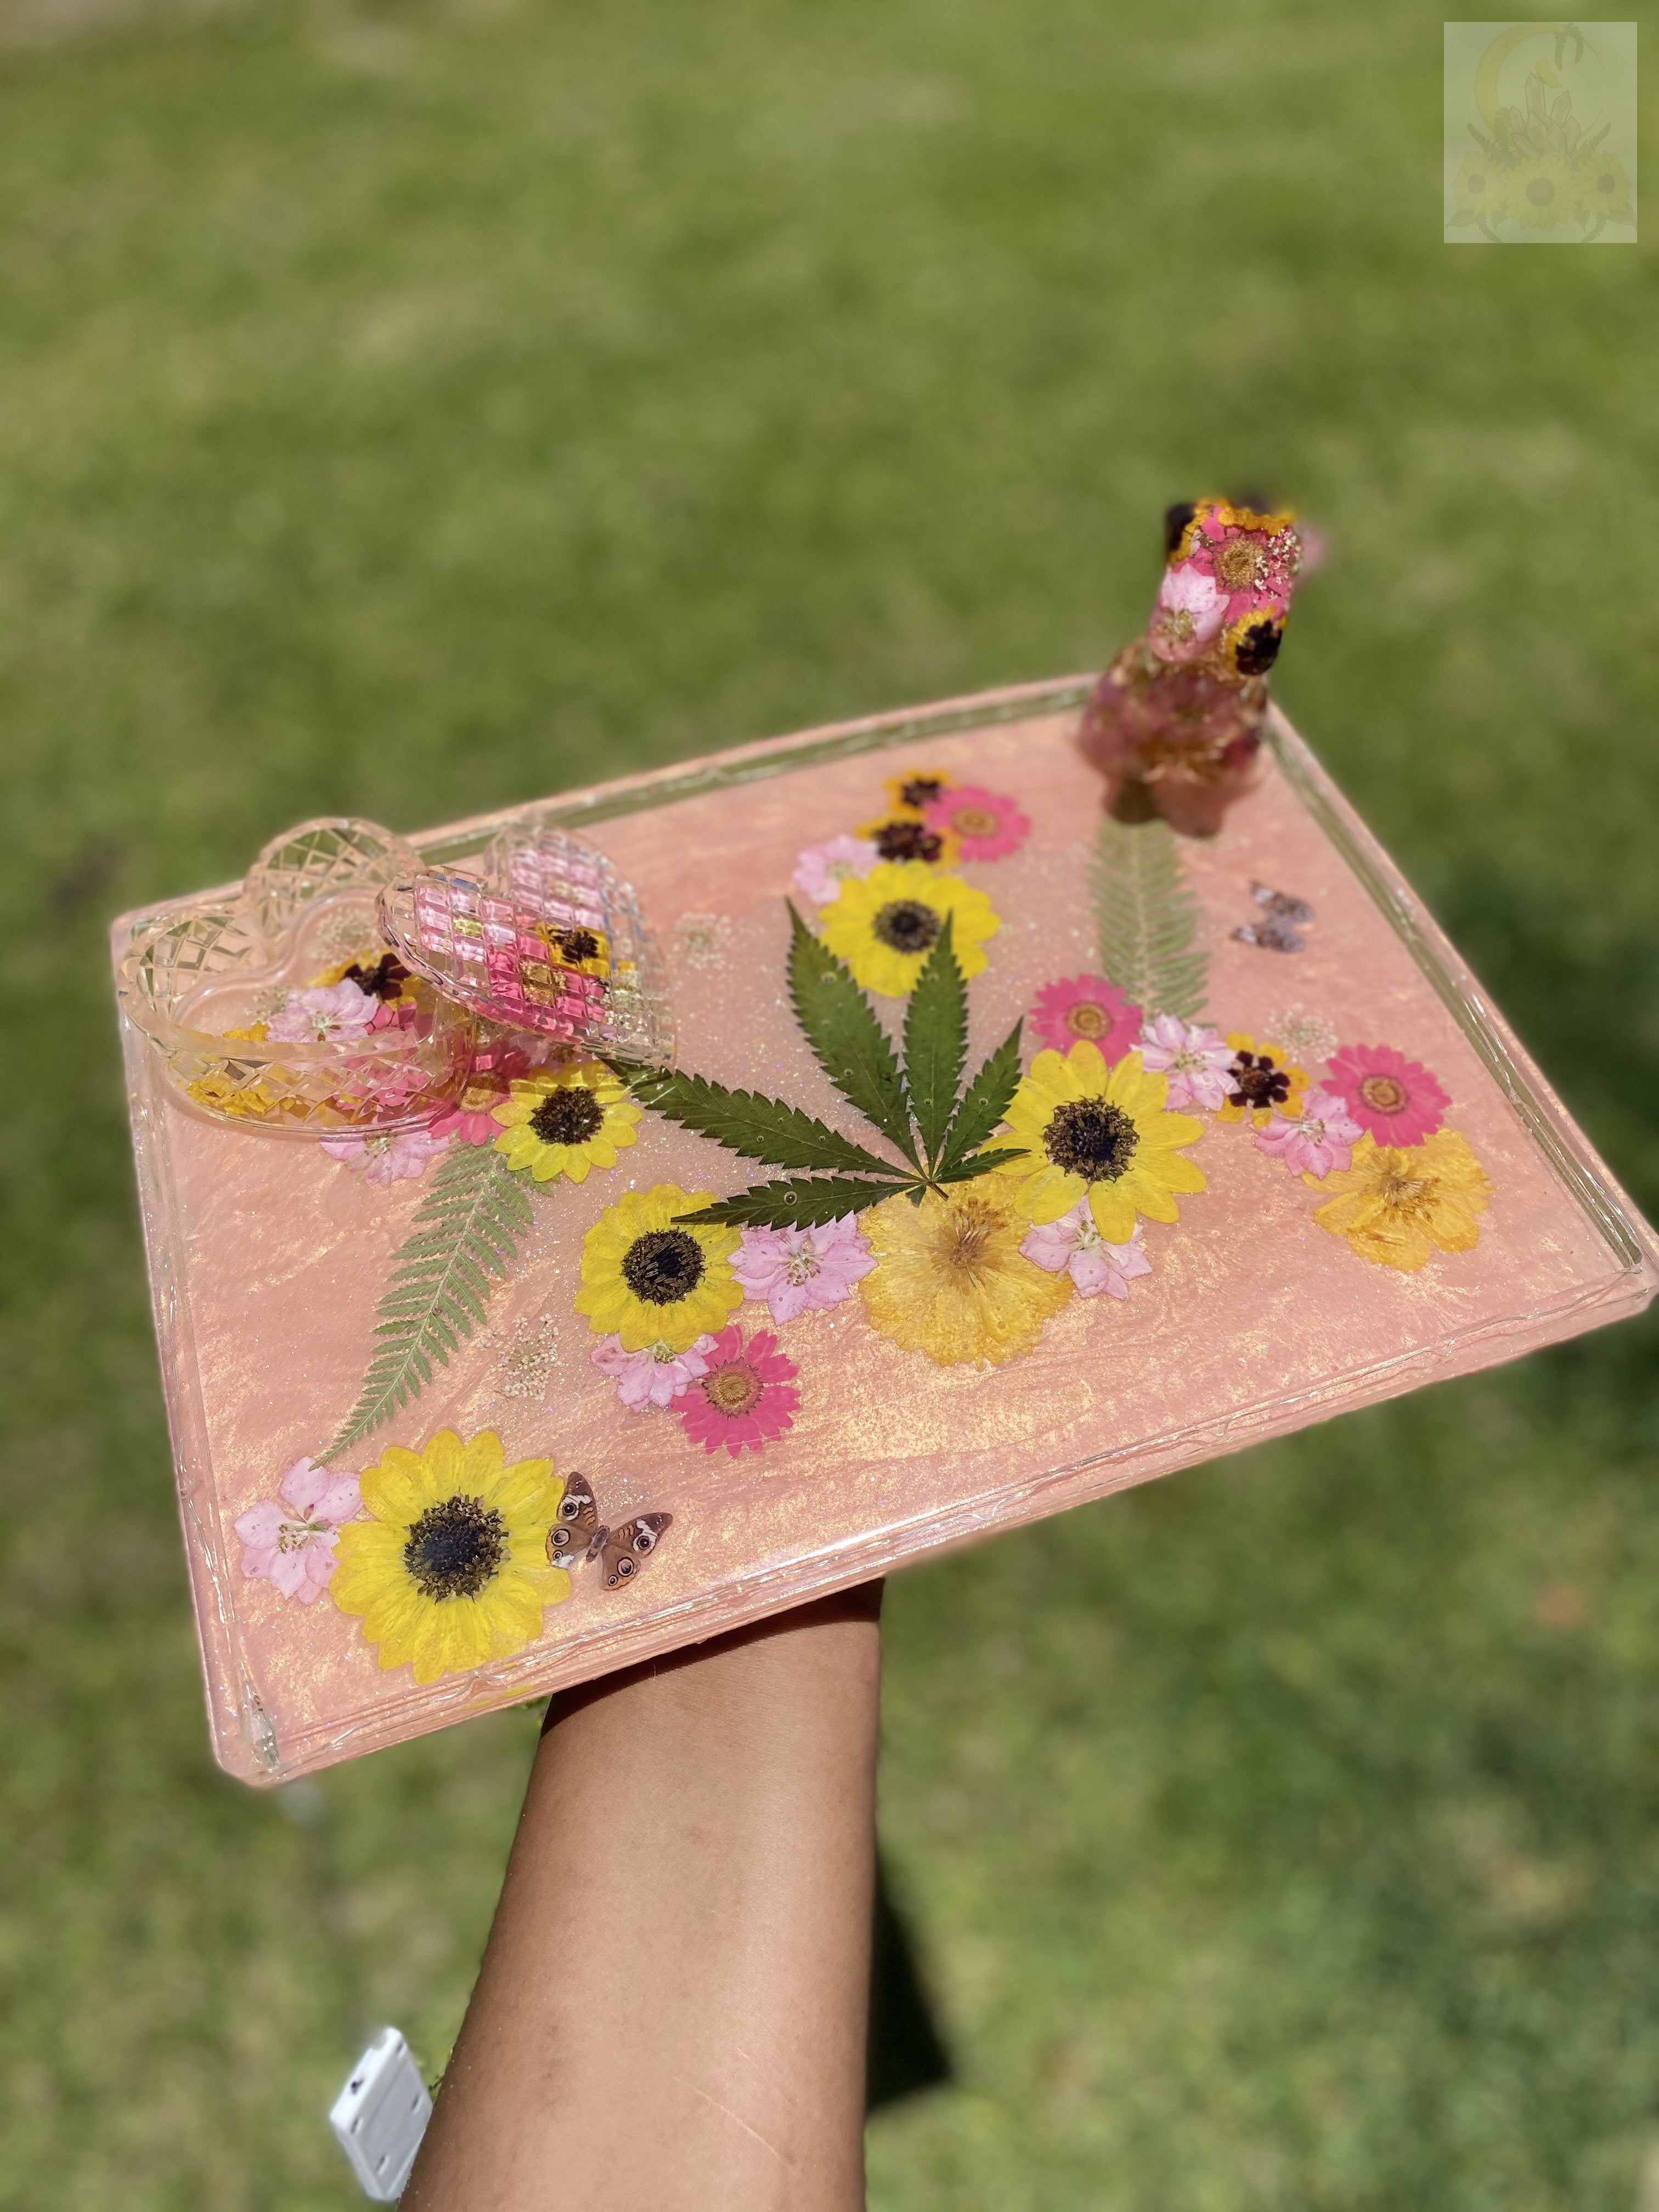 420 Peach Goddess LED XXl Rolling Tray